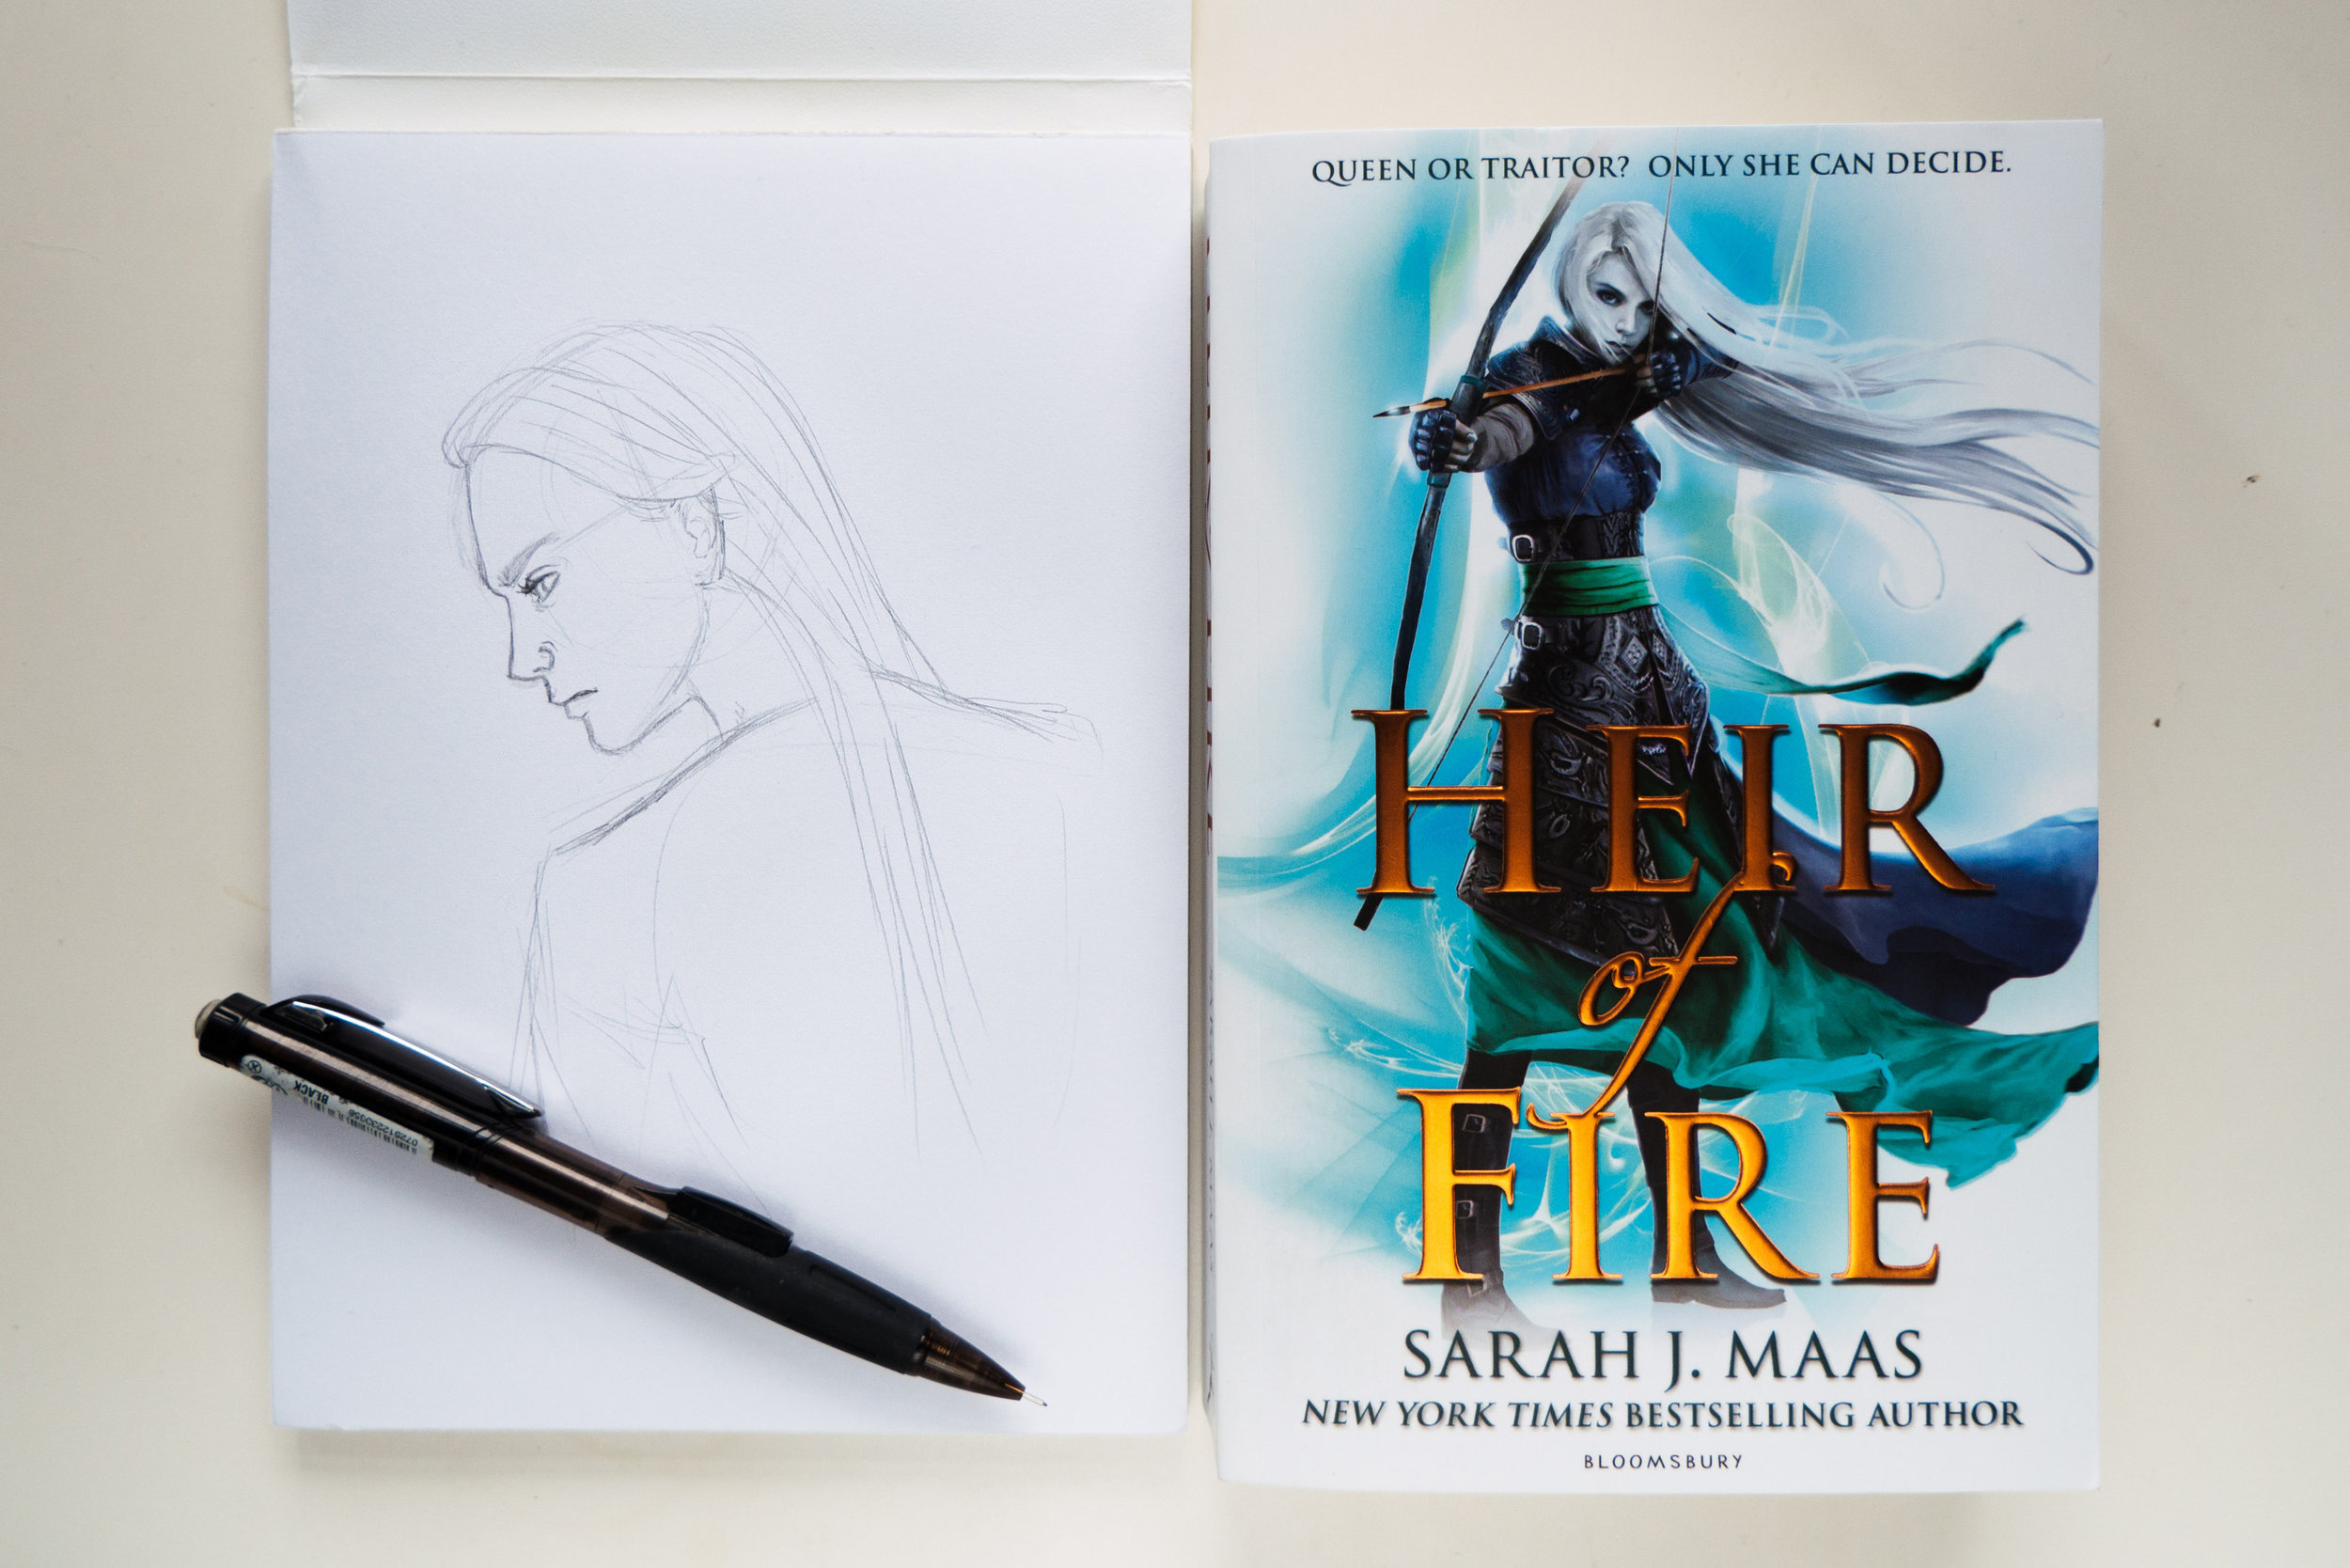 Celaena Sardothien from the Throne of Glass series by Sarah J Maas.